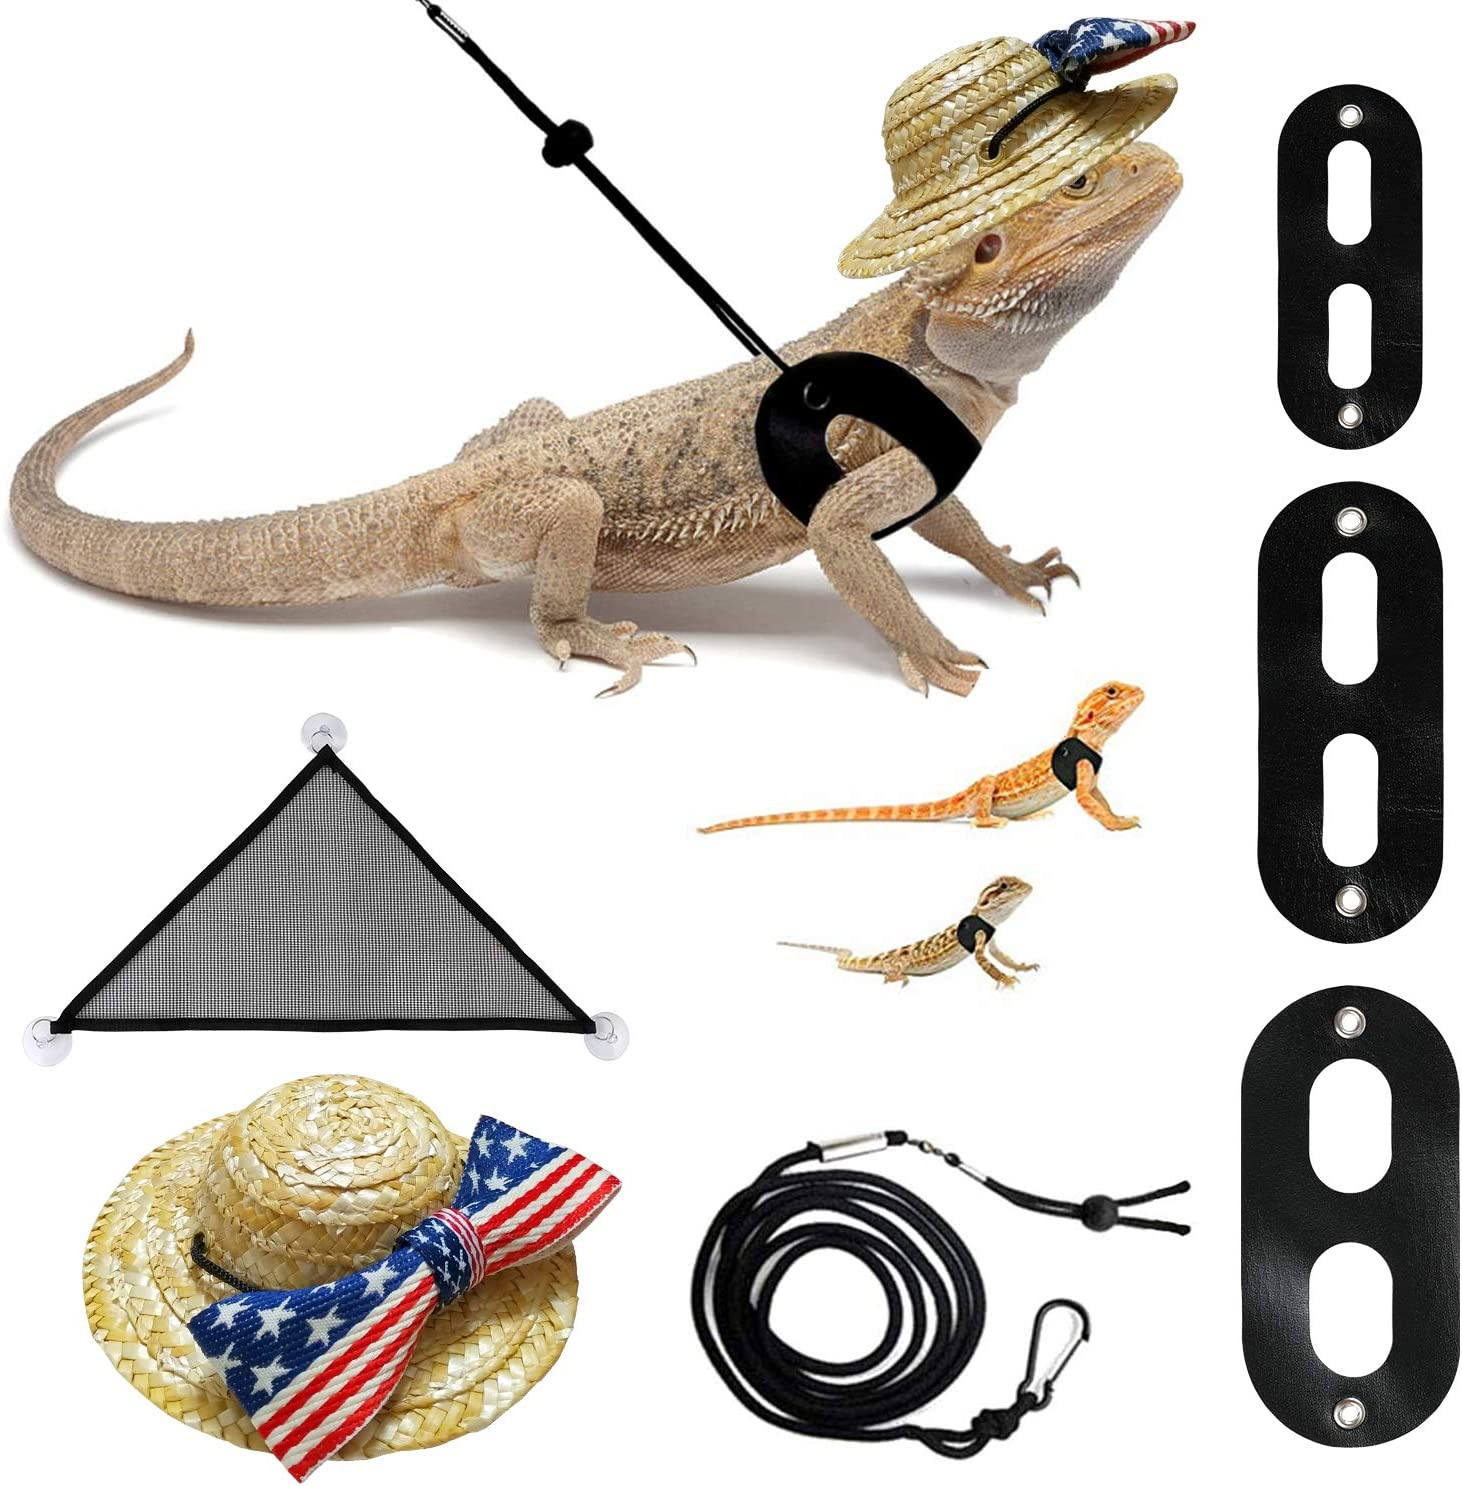 3 Pack Harness With Wings Bearded Dragon Hammock Lounger 3 Pack Lizard Reptile Harness With Wings Bearded Dragon Leash And Harness Hammock Hat Patriotic Clothes Set Rattan Hat With American Flag